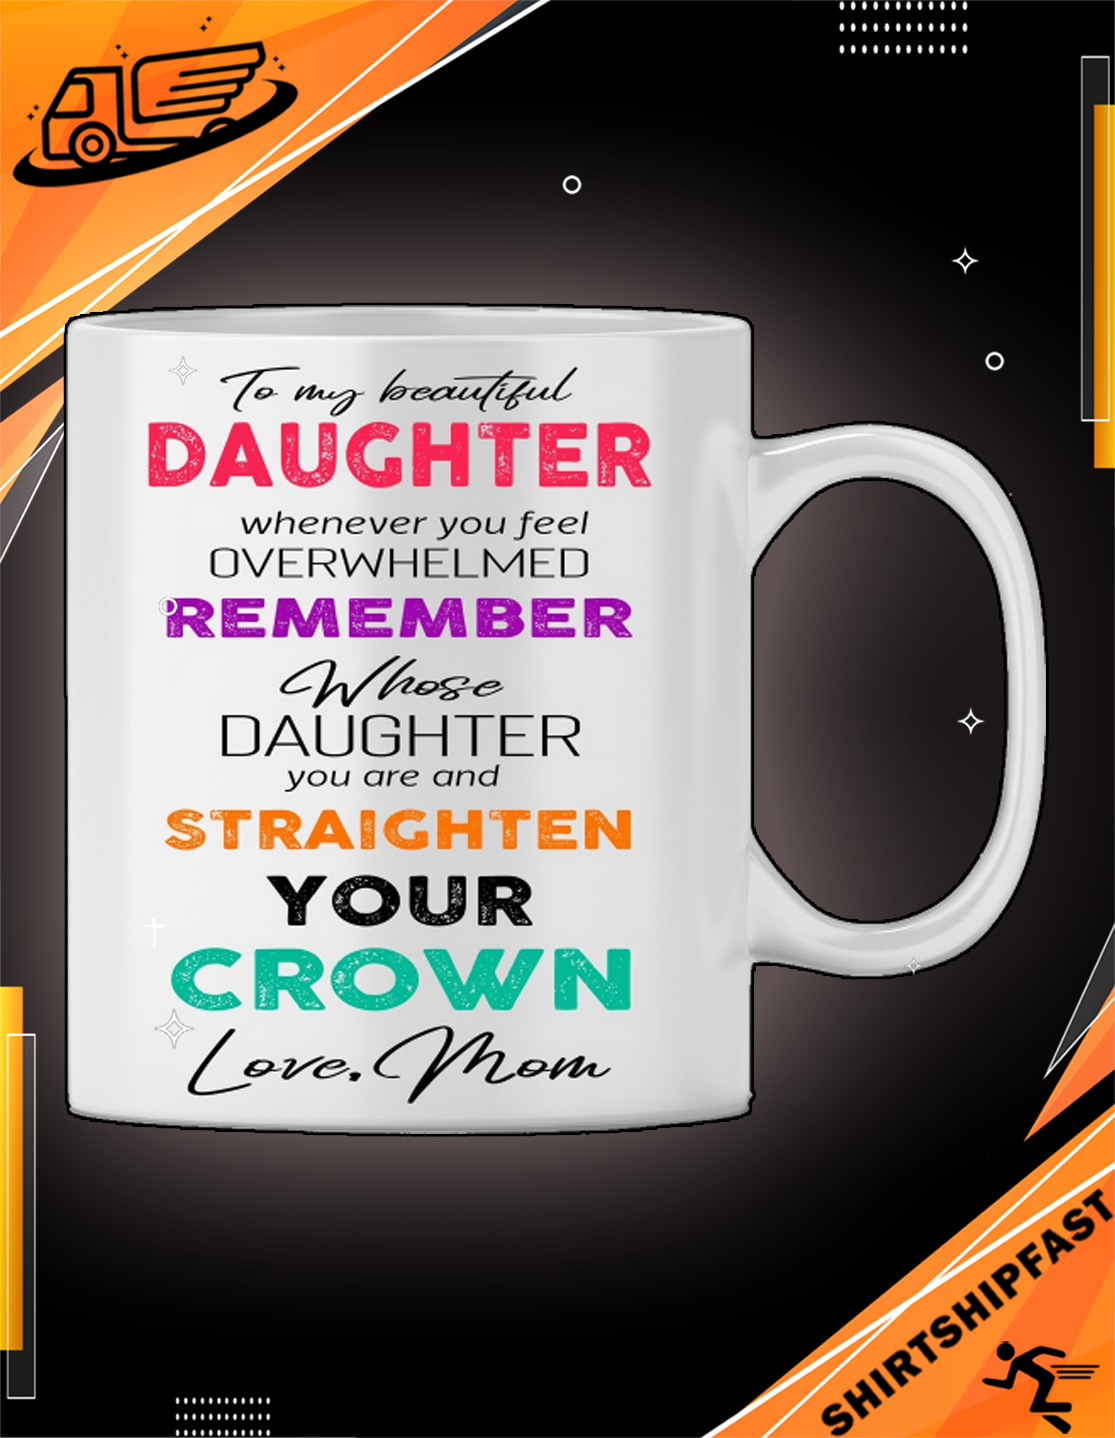 To my beautiful daughter whenever you feel overwhelmed love mom mug - Picture 2